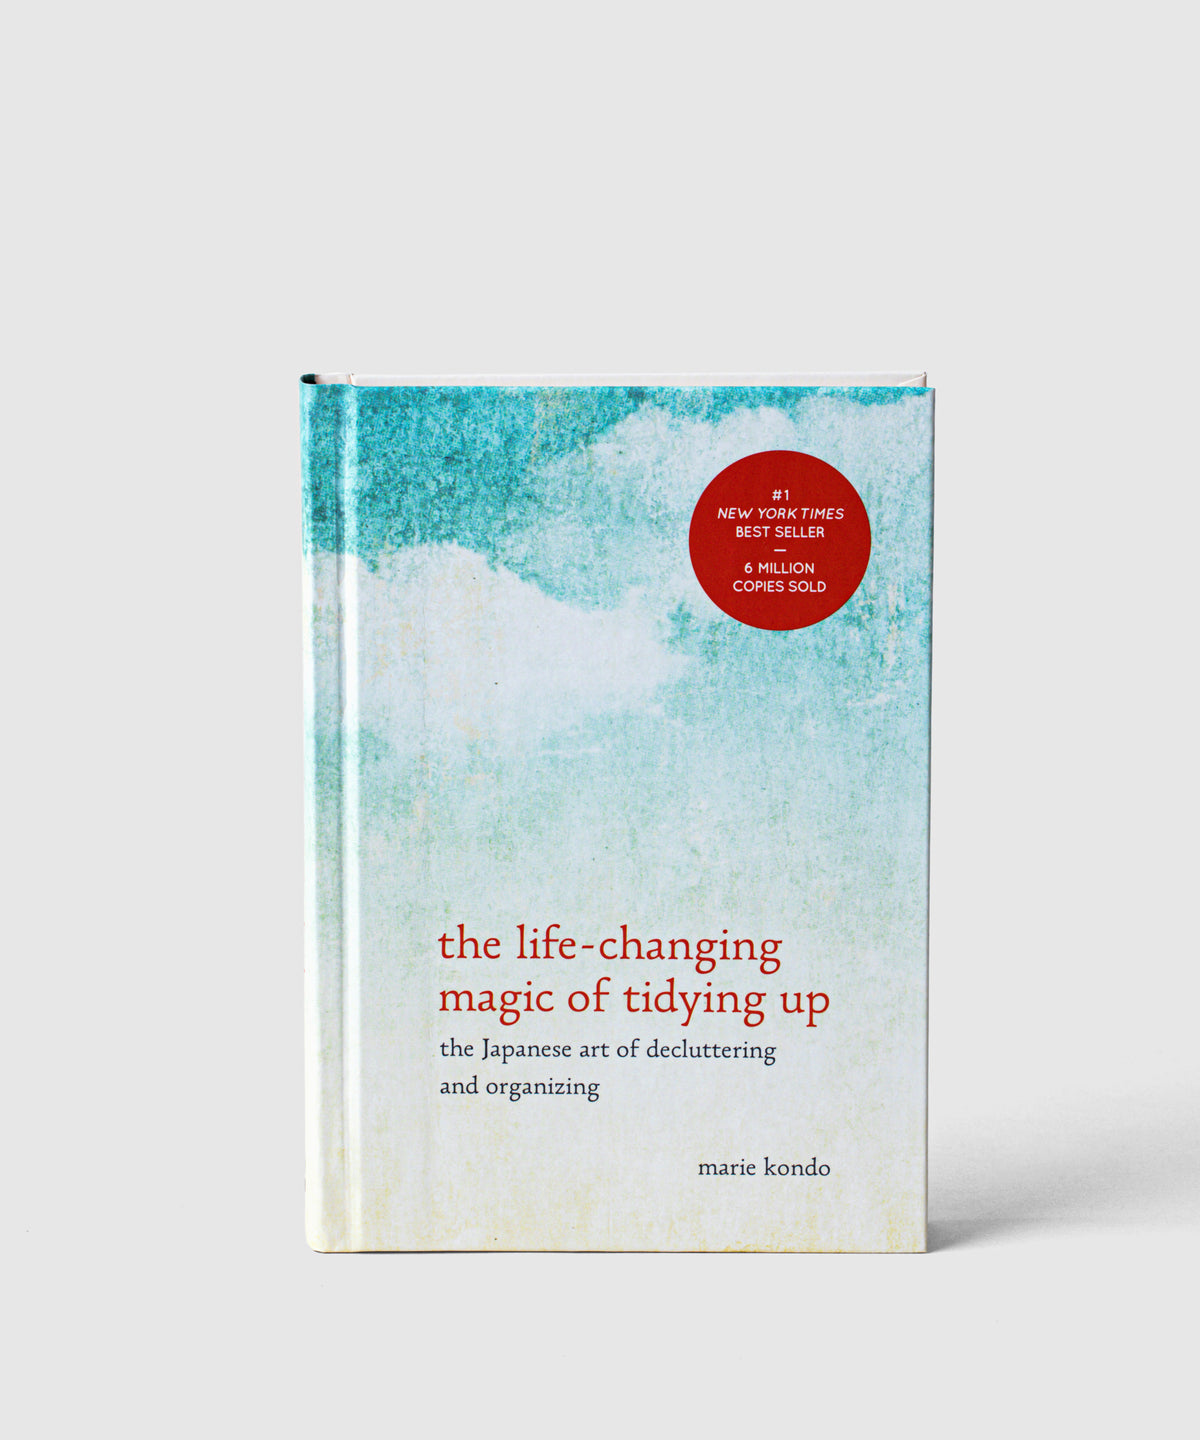 'The Life-Changing Magic of Tidying Up: The Japanese Art of Decluttering and Organizing'